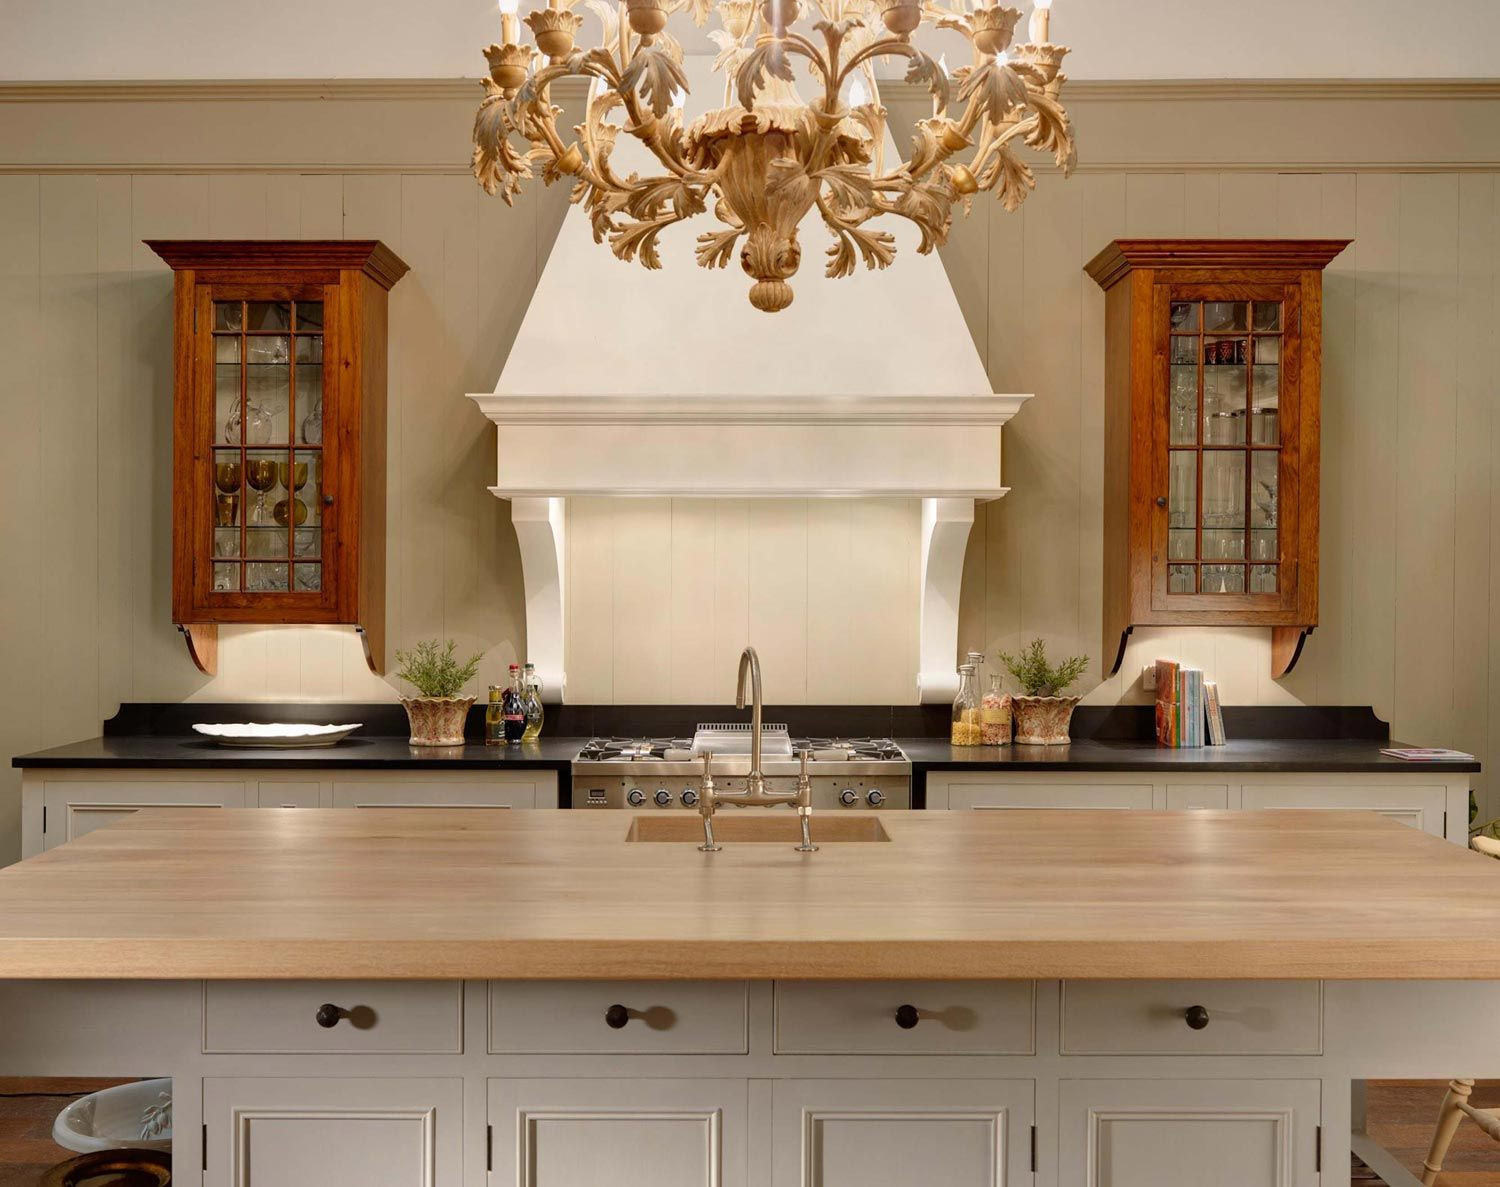 Designer kitchen s and bath slideshow image - Minnie Peters Portfolio Interior Design Slideshow Beautiful Kitchens Pantriesbathspeter